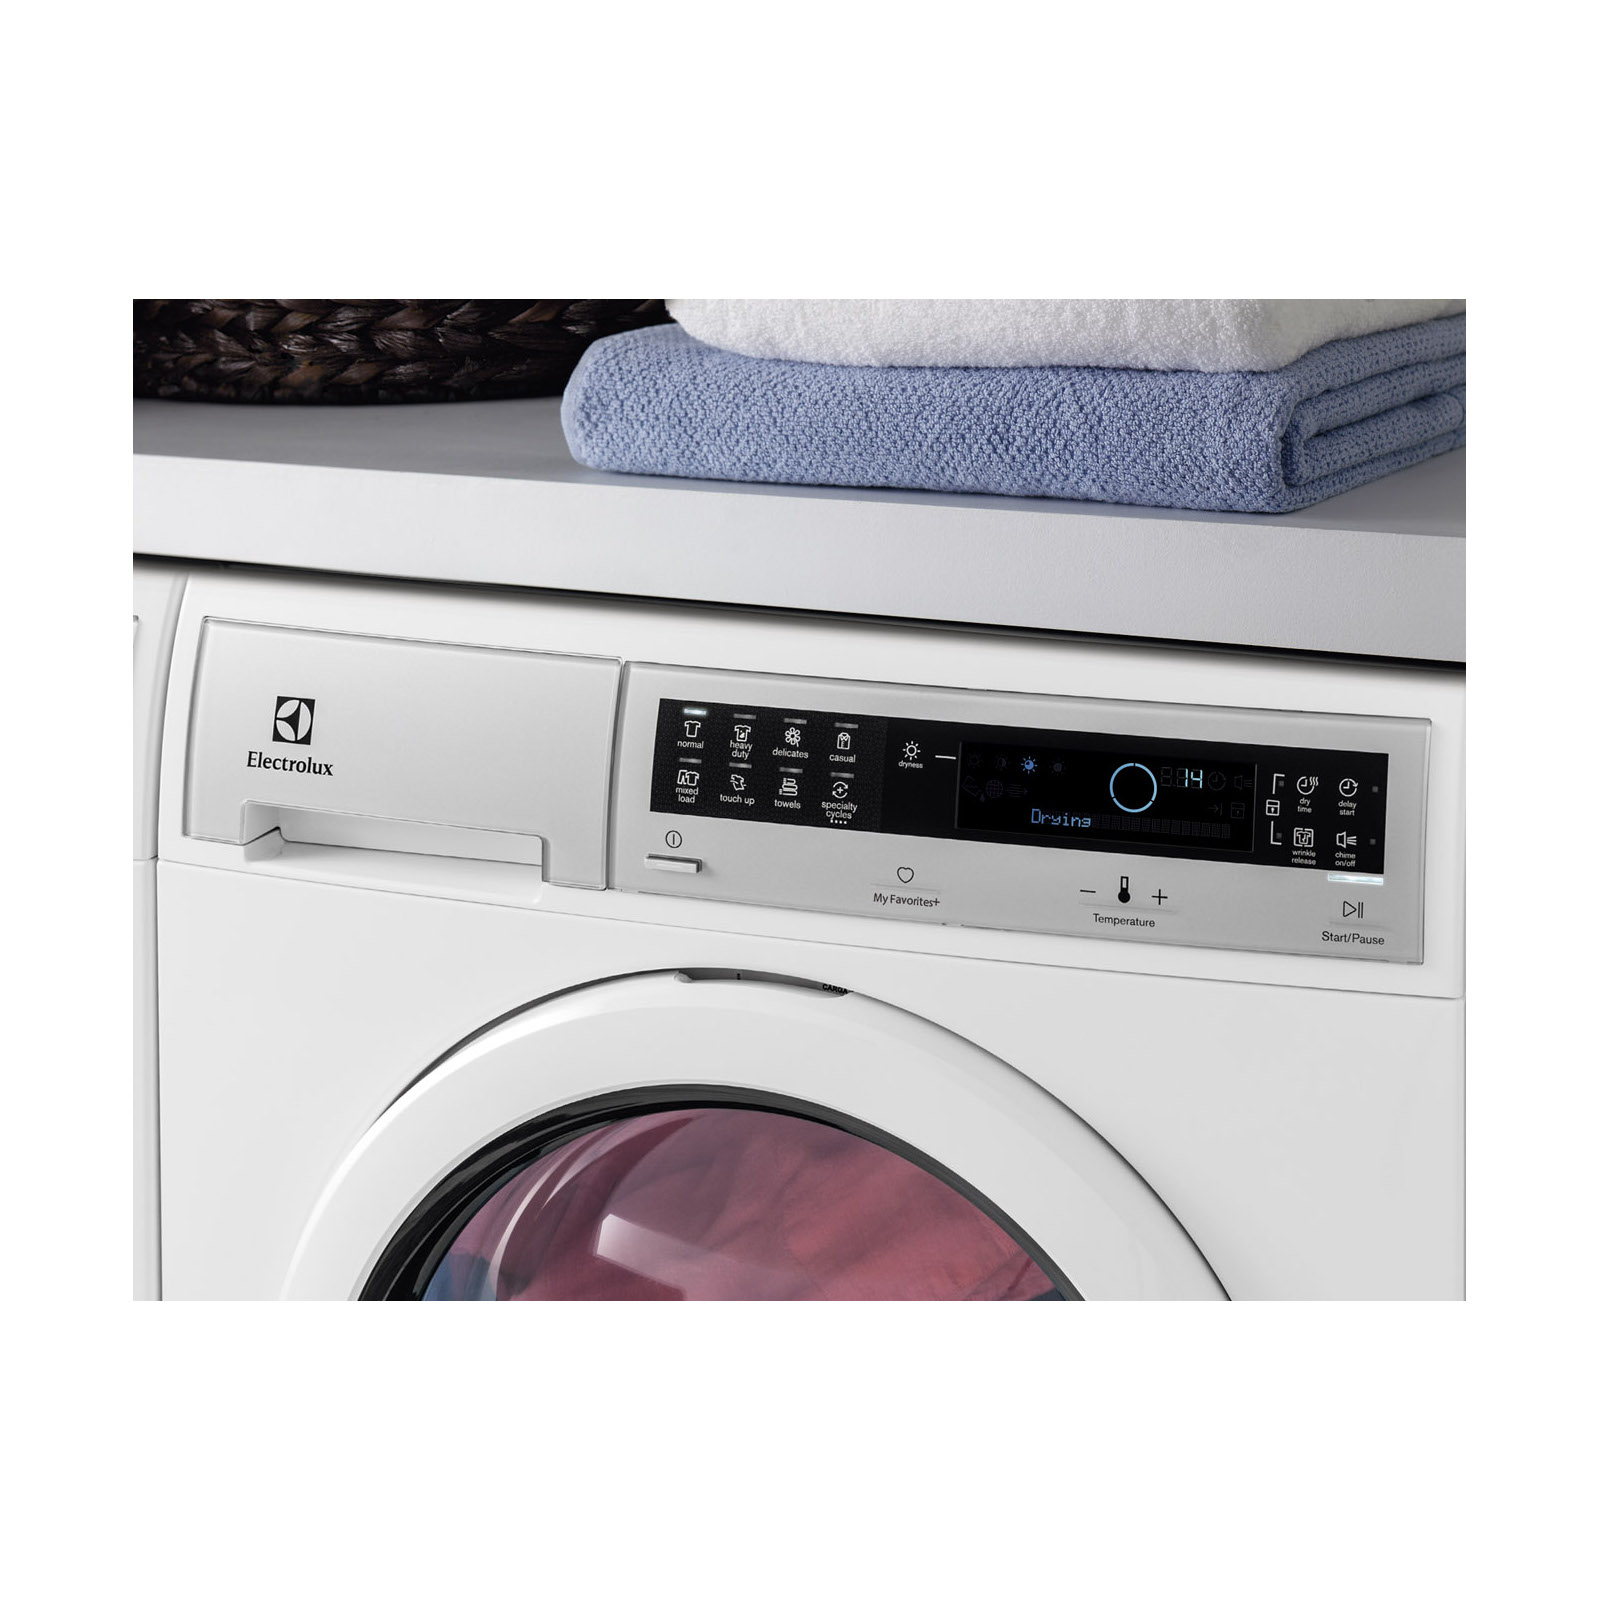 Electrolux EIED200QSW 4.0 cu. ft. Front Load Compact Ventless Dryer - White